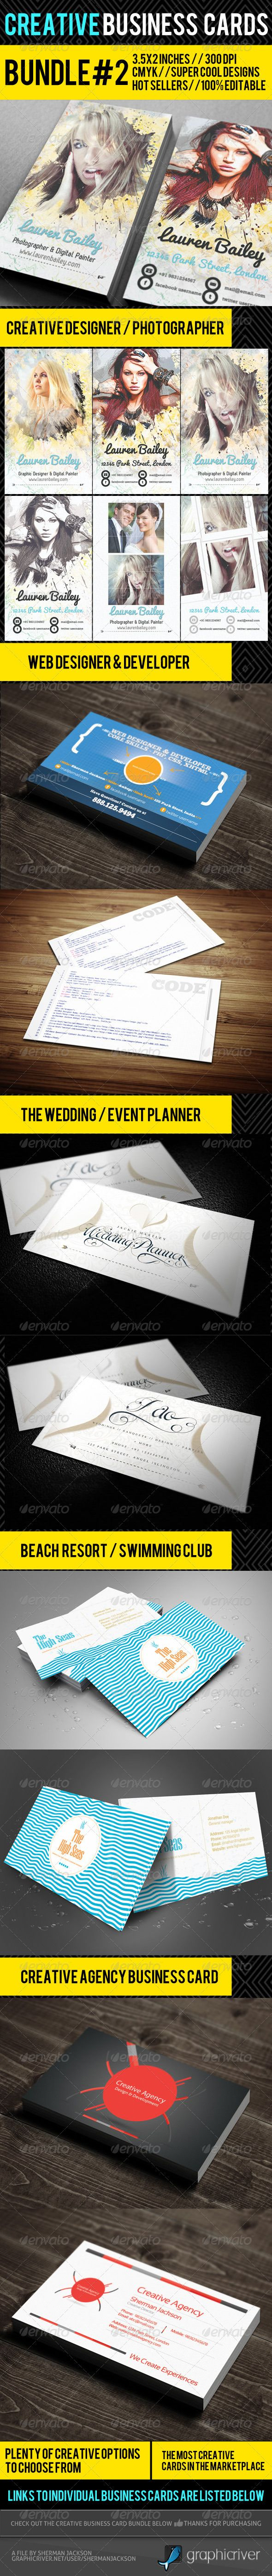 171 best print templates images on pinterest all kinds of 171 best print templates images on pinterest all kinds of business cards and cleanses magicingreecefo Images